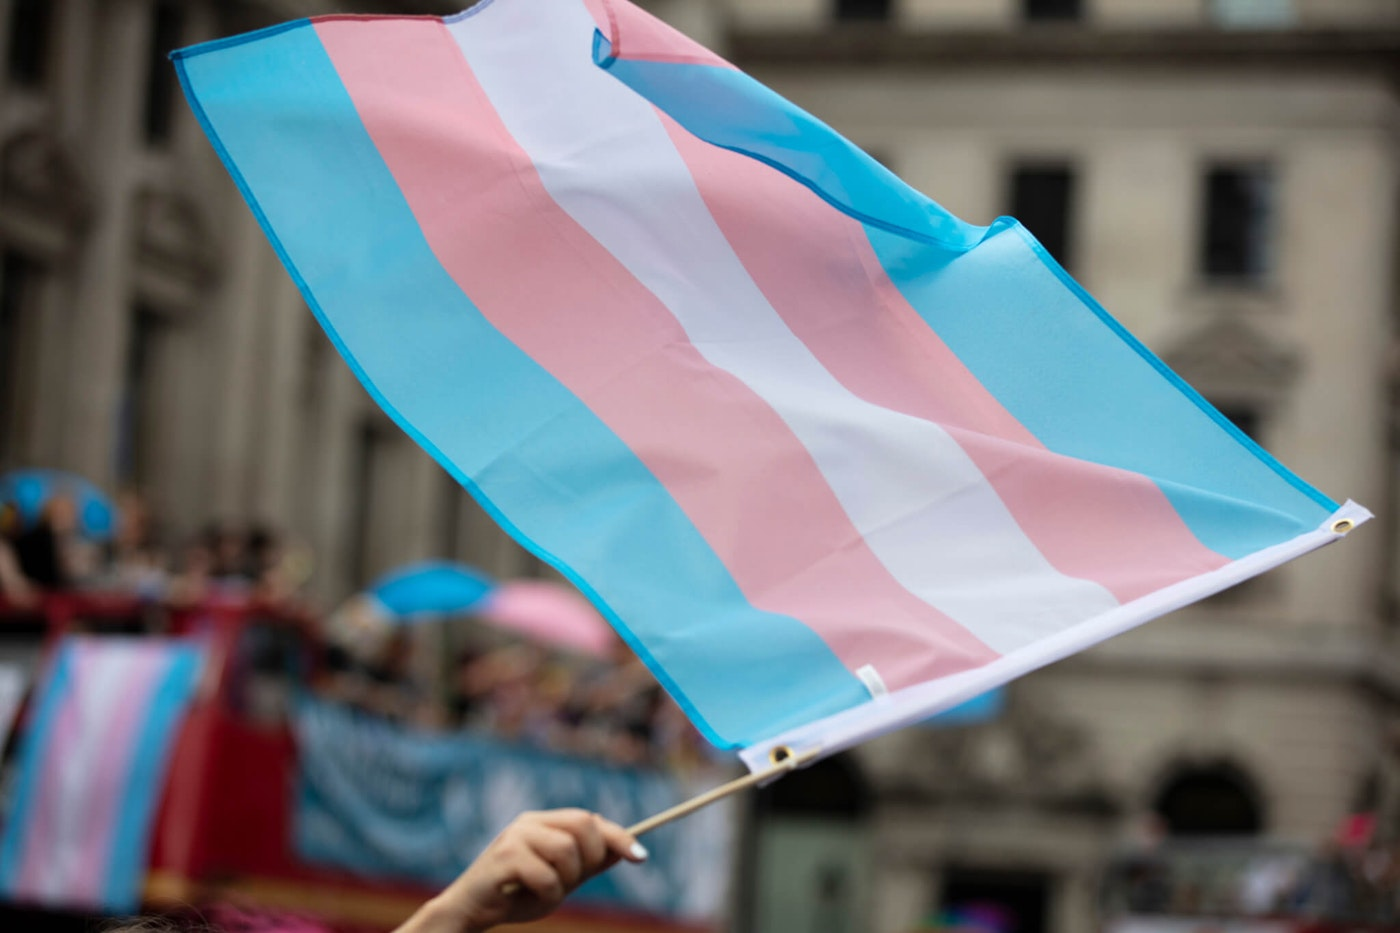 Virginia's department of education is sued over more inclusive policies on the International Day of Transgender Visibility